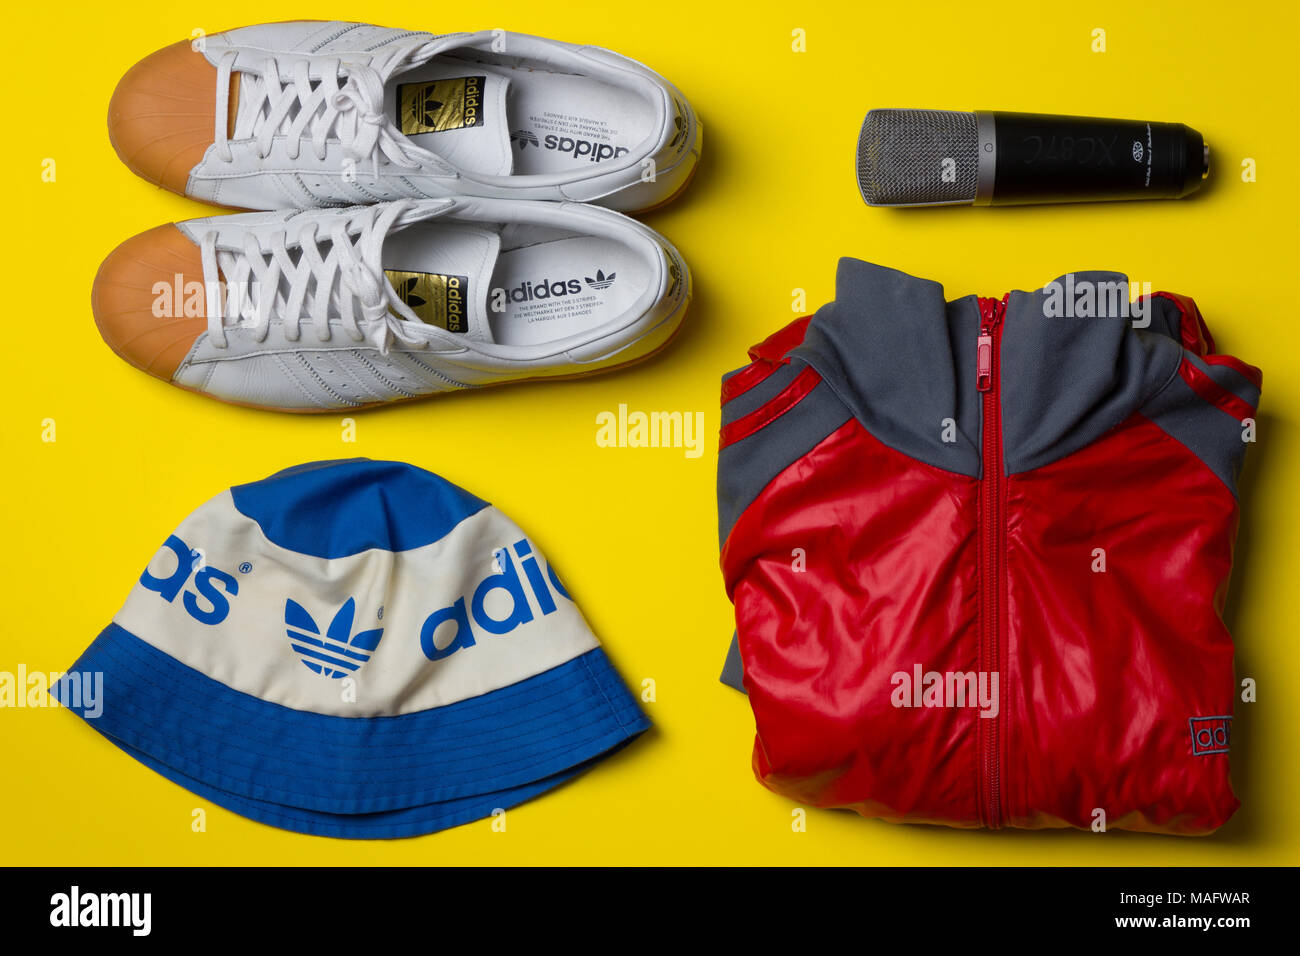 a fantastic studio shot of street wear fashion taken from above against a bright yellow background - Stock Image